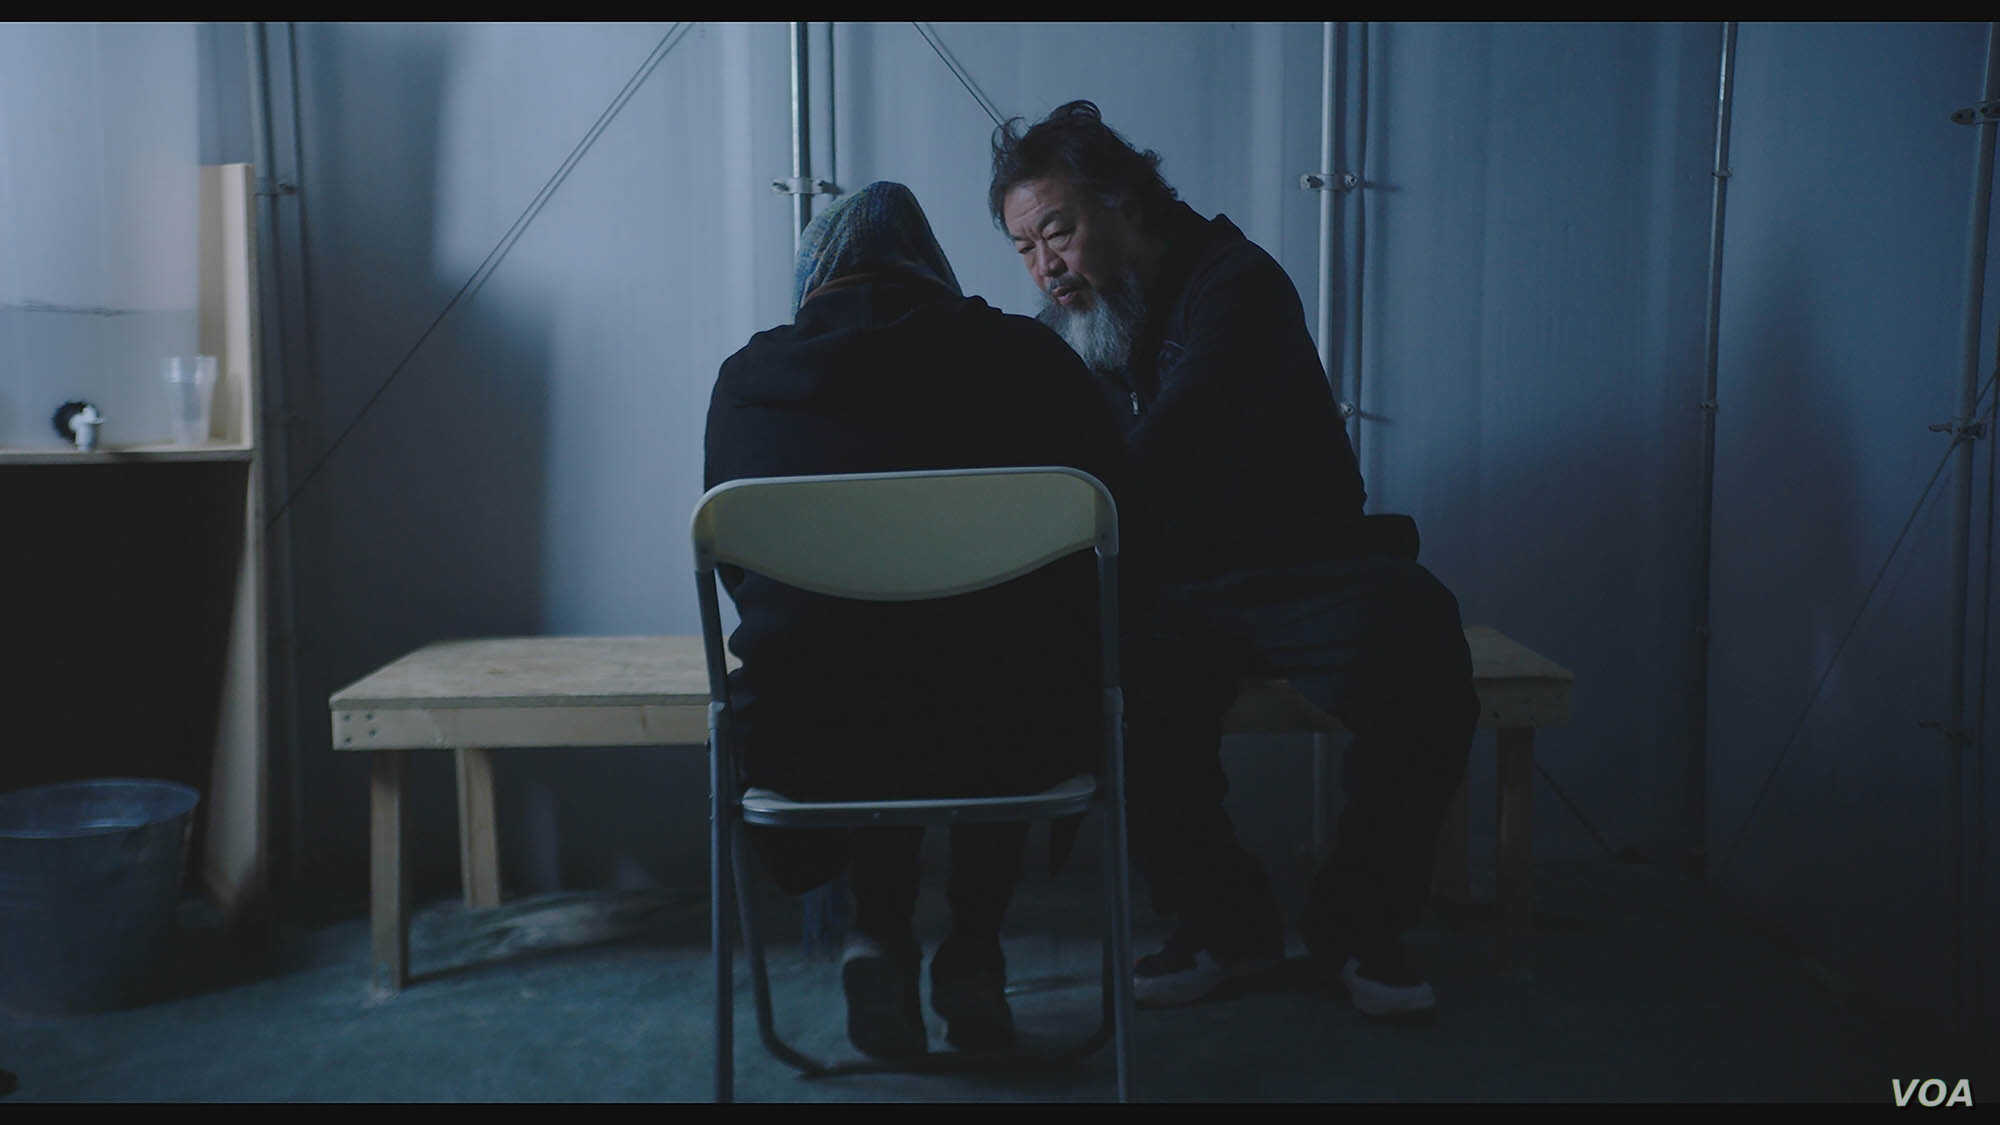 Ai Weiwei talks to refugee in scene from 'Human Flow' documentary.